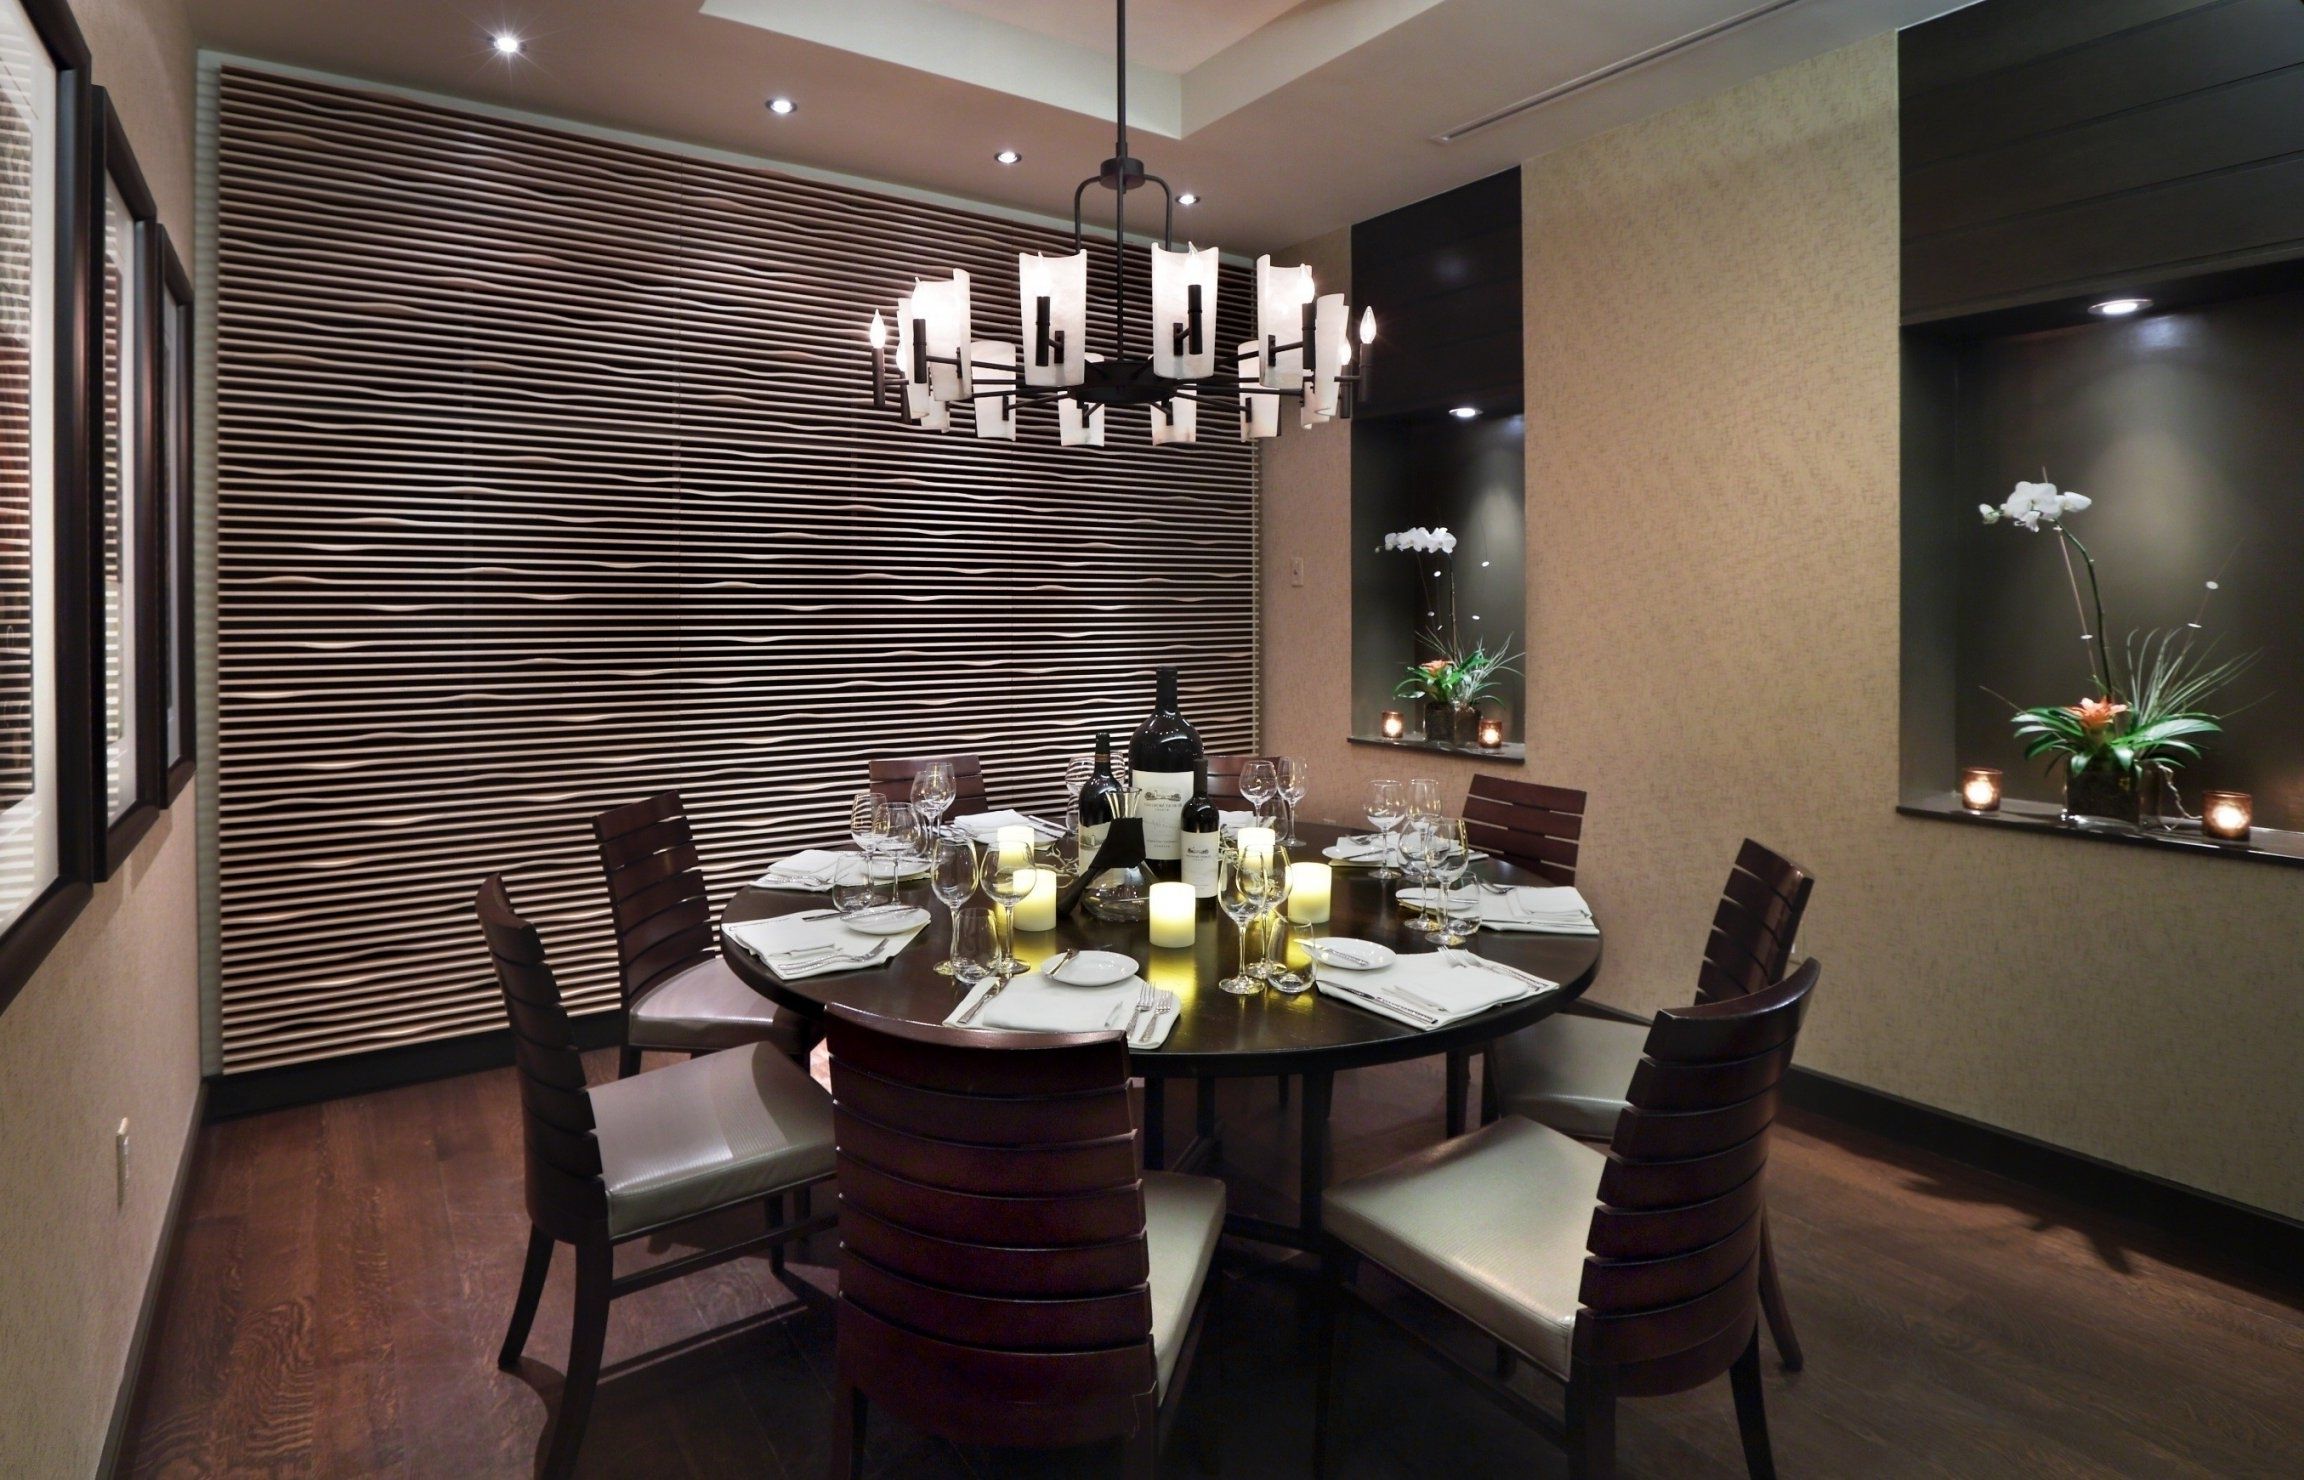 Current Dining Room Chandeliers For Low Ceilings (View 17 of 20)